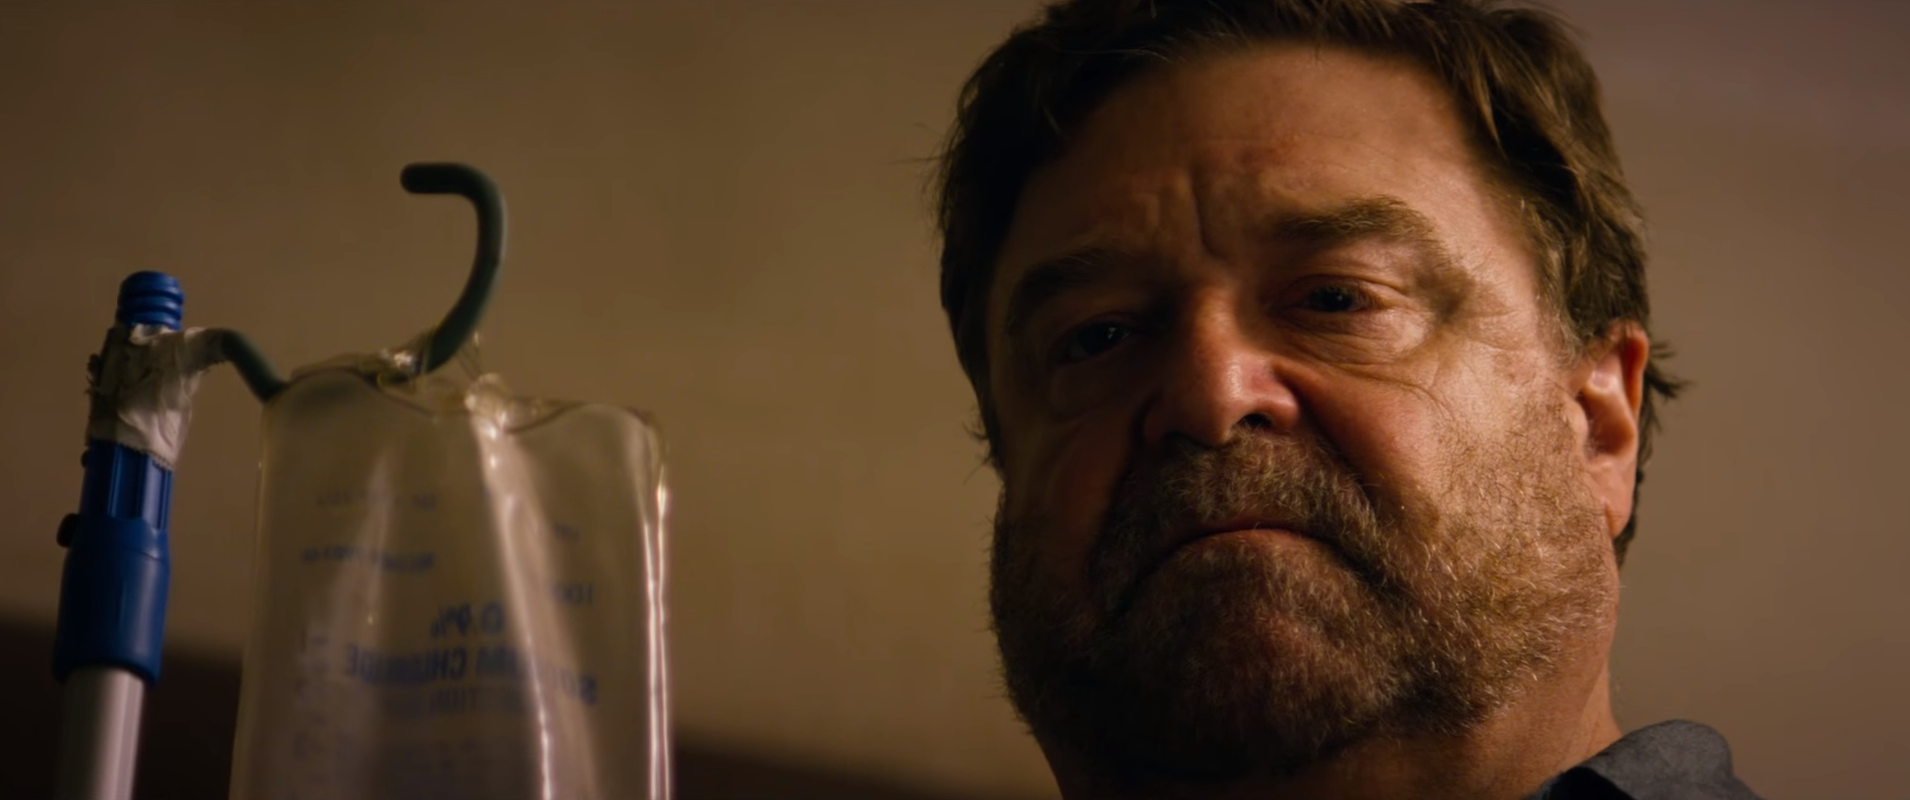 John Goodman is the monster in this new 10 Cloverfield Lane